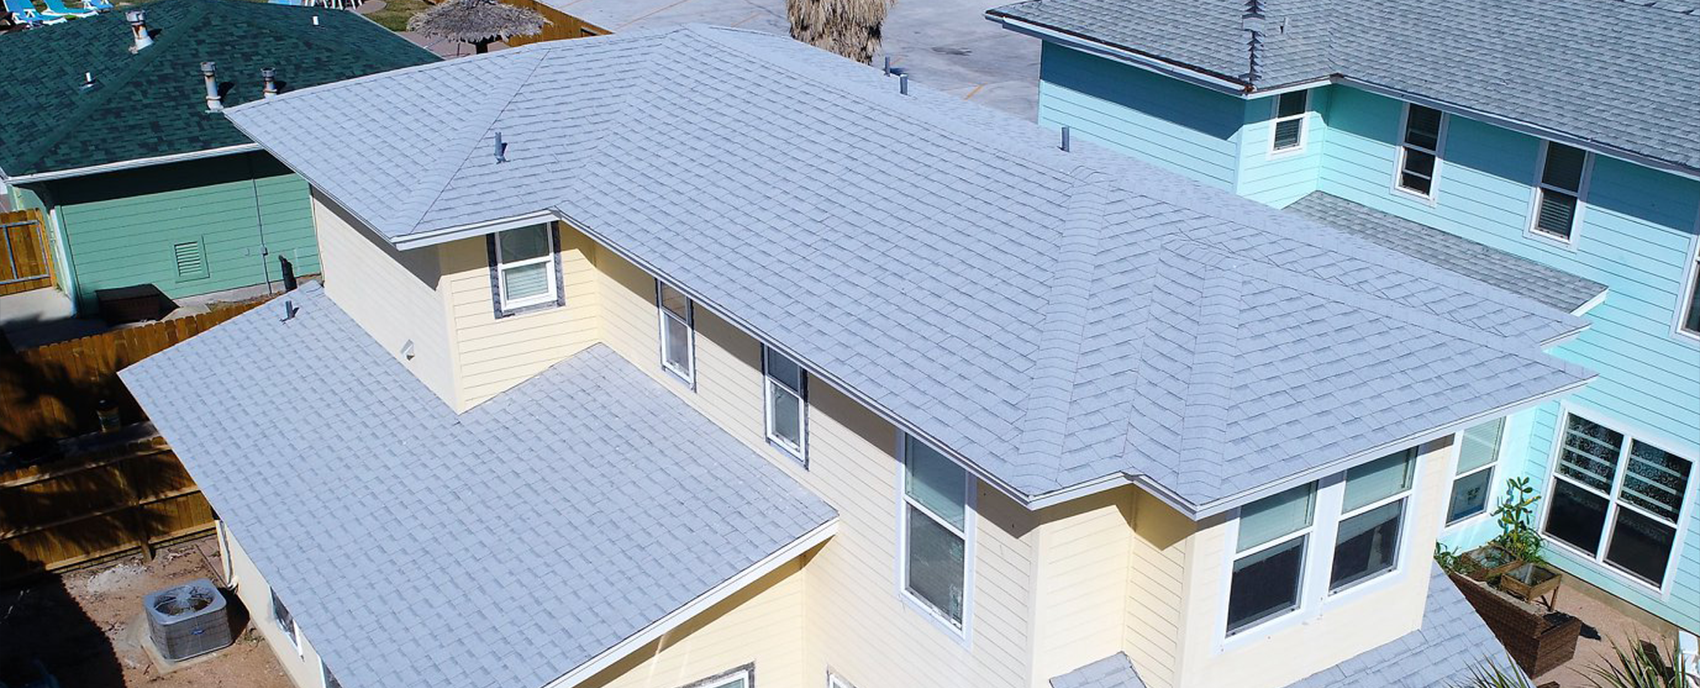 Residential roofing light blue roof